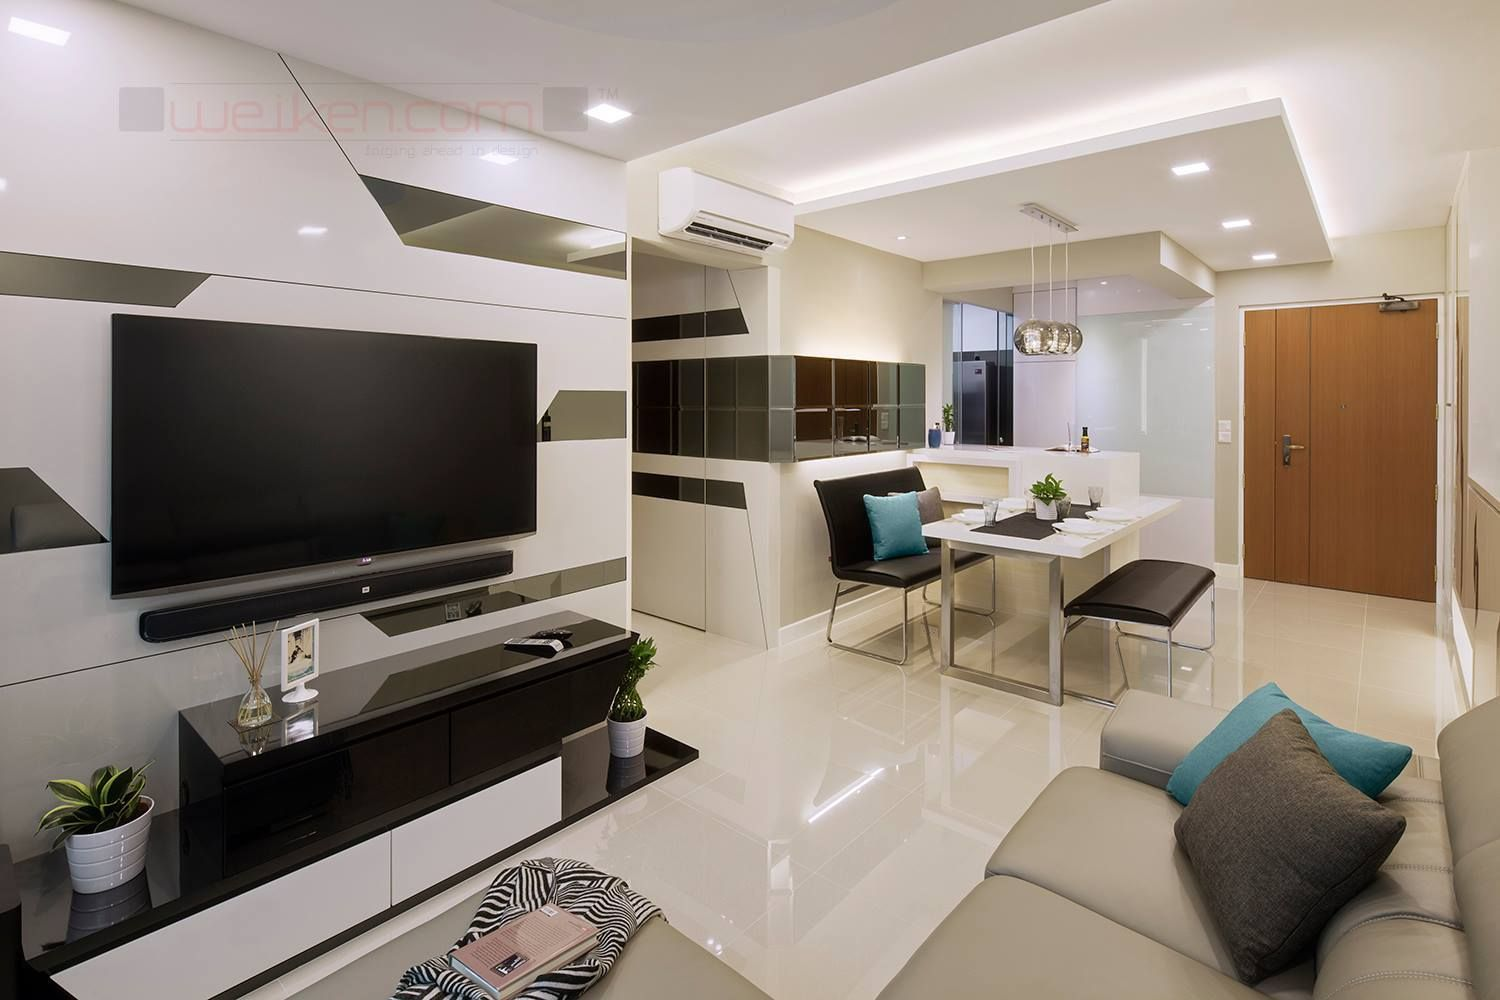 Get Free Interior Design Ideas For Your HDB, BTO, Condo Or Landed Homes.  Browse Over 700 Design Ideas From Singapore Designers.